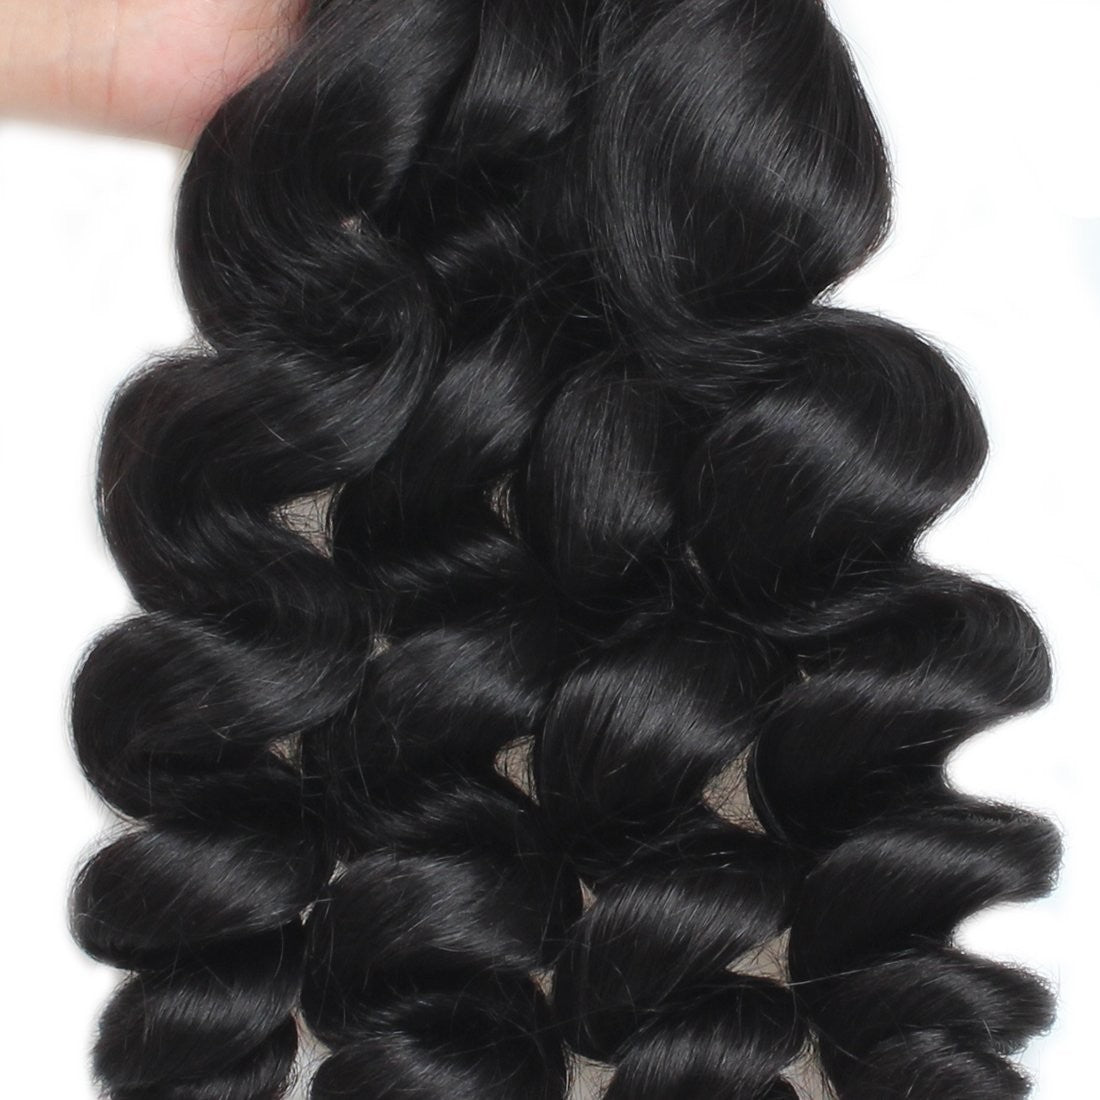 Brazilian  unprocessed loose wave Virgin Human Hair 3 Bundles With Lace Closure hair weaving human virgin hair bundles with closure - BelCorner